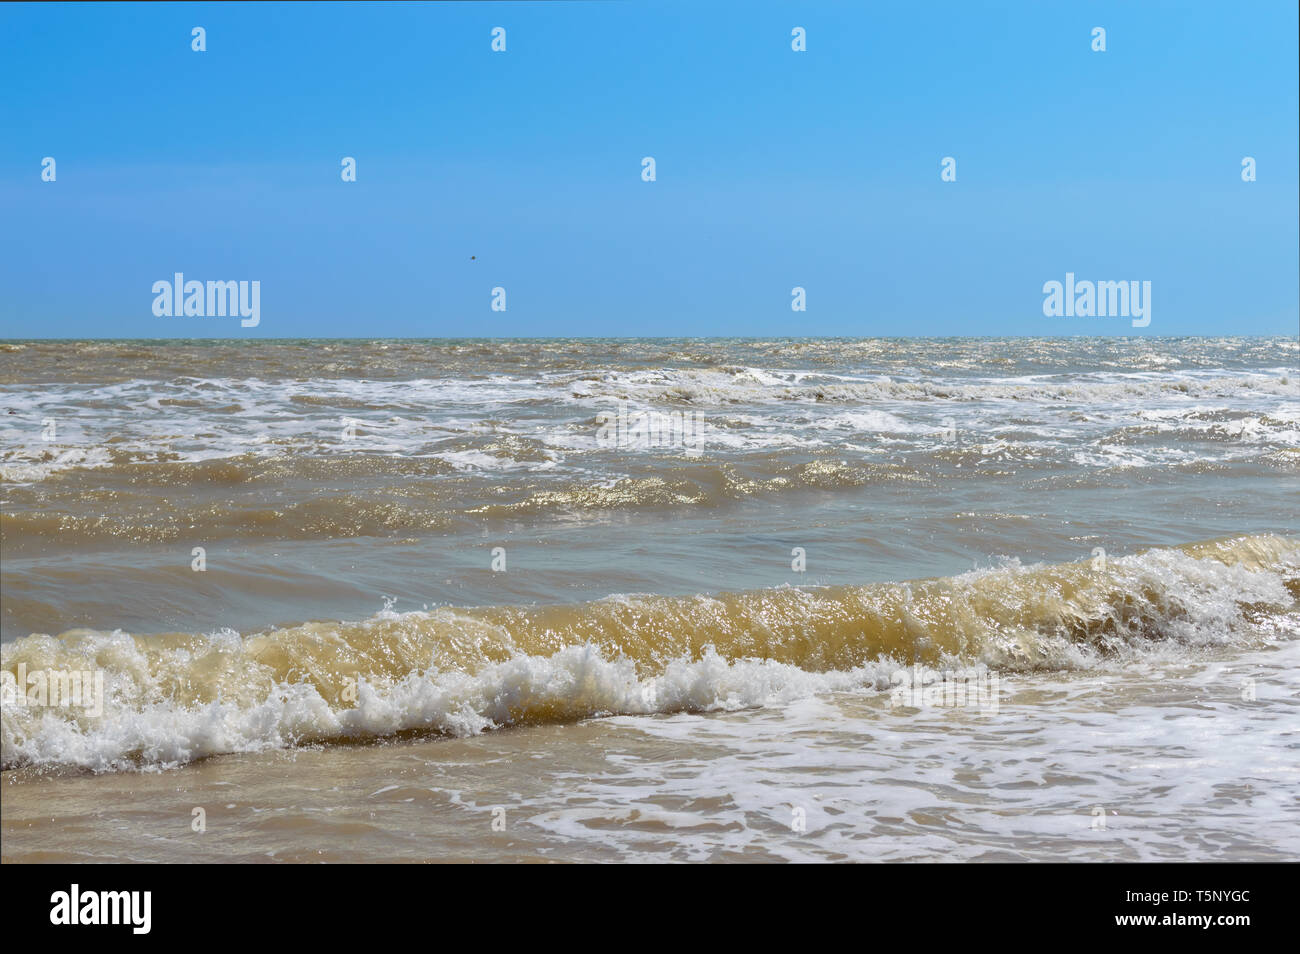 Waves on the shore. Sea wave with sunlight. Beautiful view of the sea and blue sky. Seascape. - Stock Image